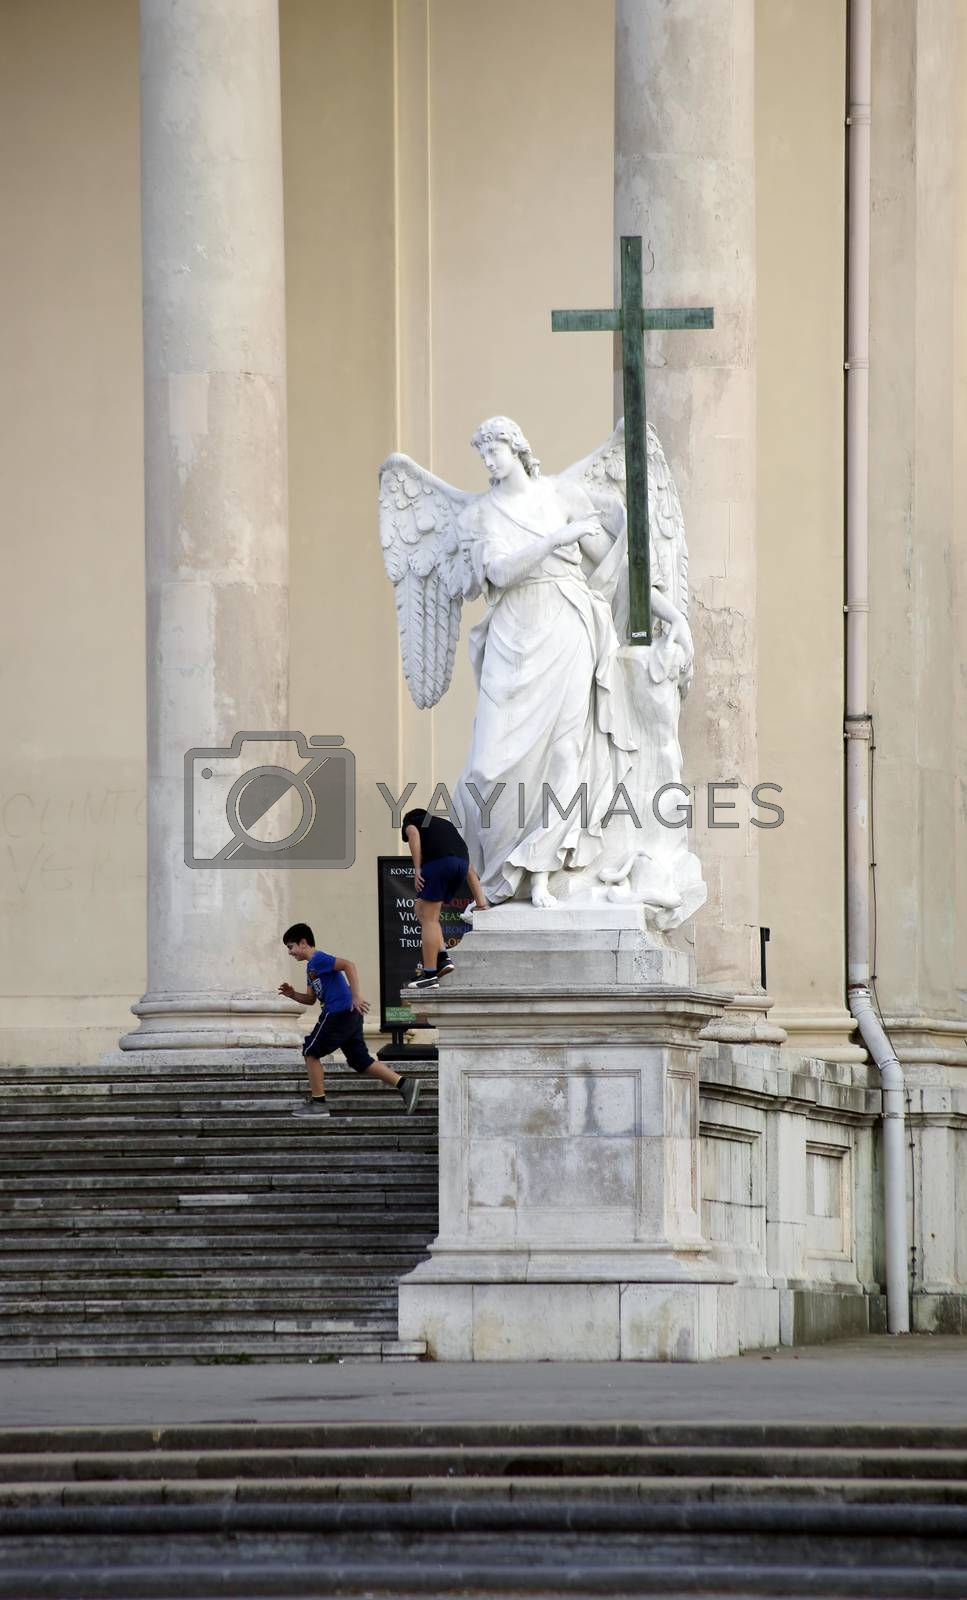 Vienna, Austria - March 30, 2014: Children play on the stairs of the entrance of the St. Charles Church on an angel sculpture on March 30, 2014 in Vienna.